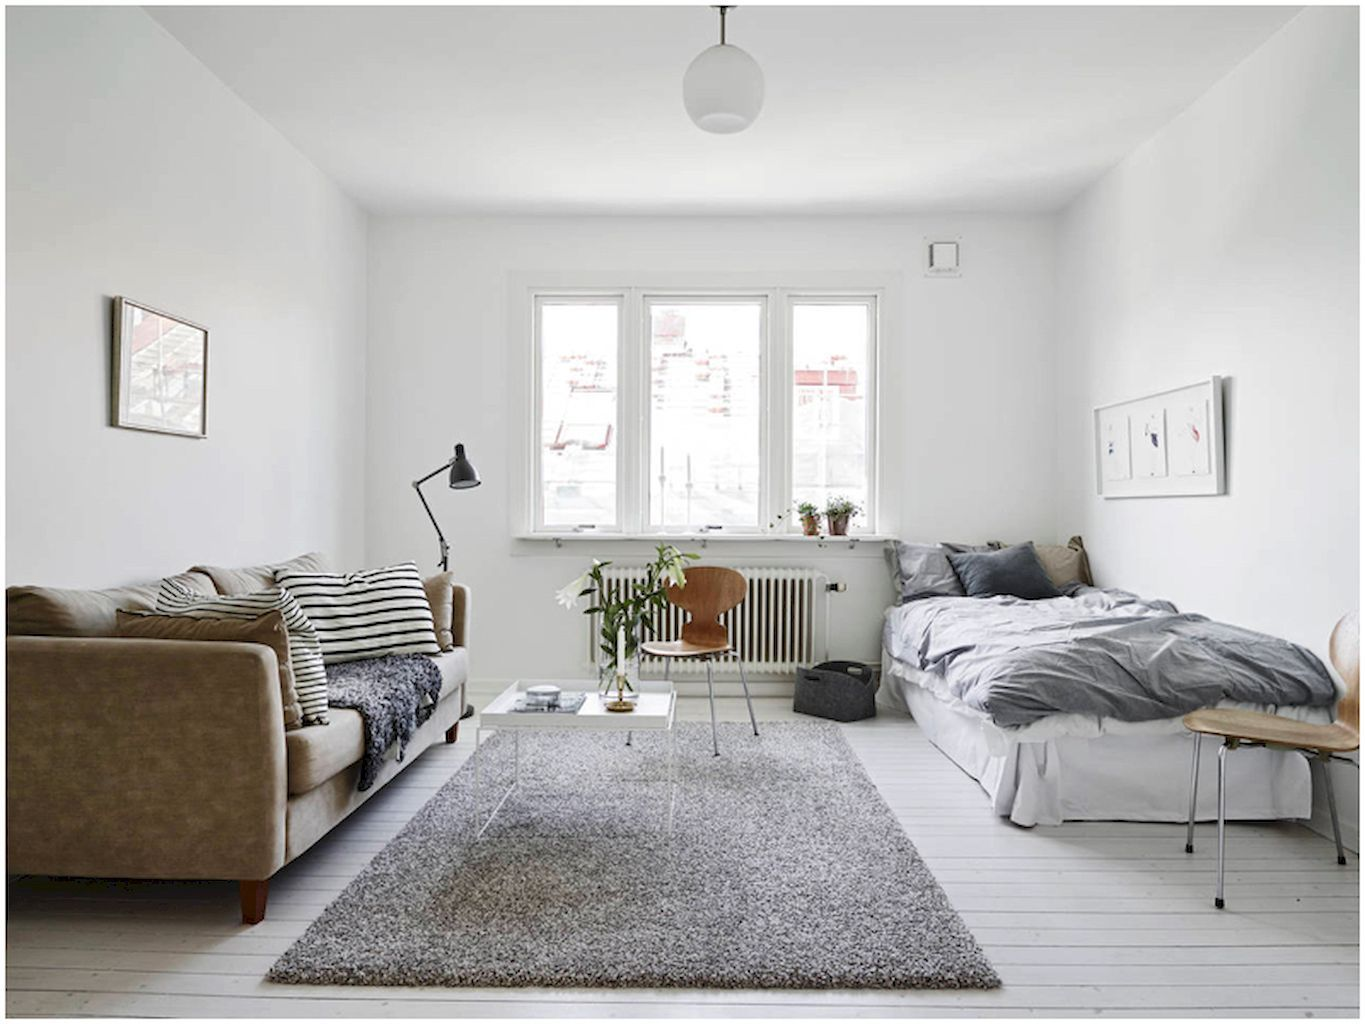 Awesome 60 Cool Studio Apartment with Scandinavian Style Ideas on A ...